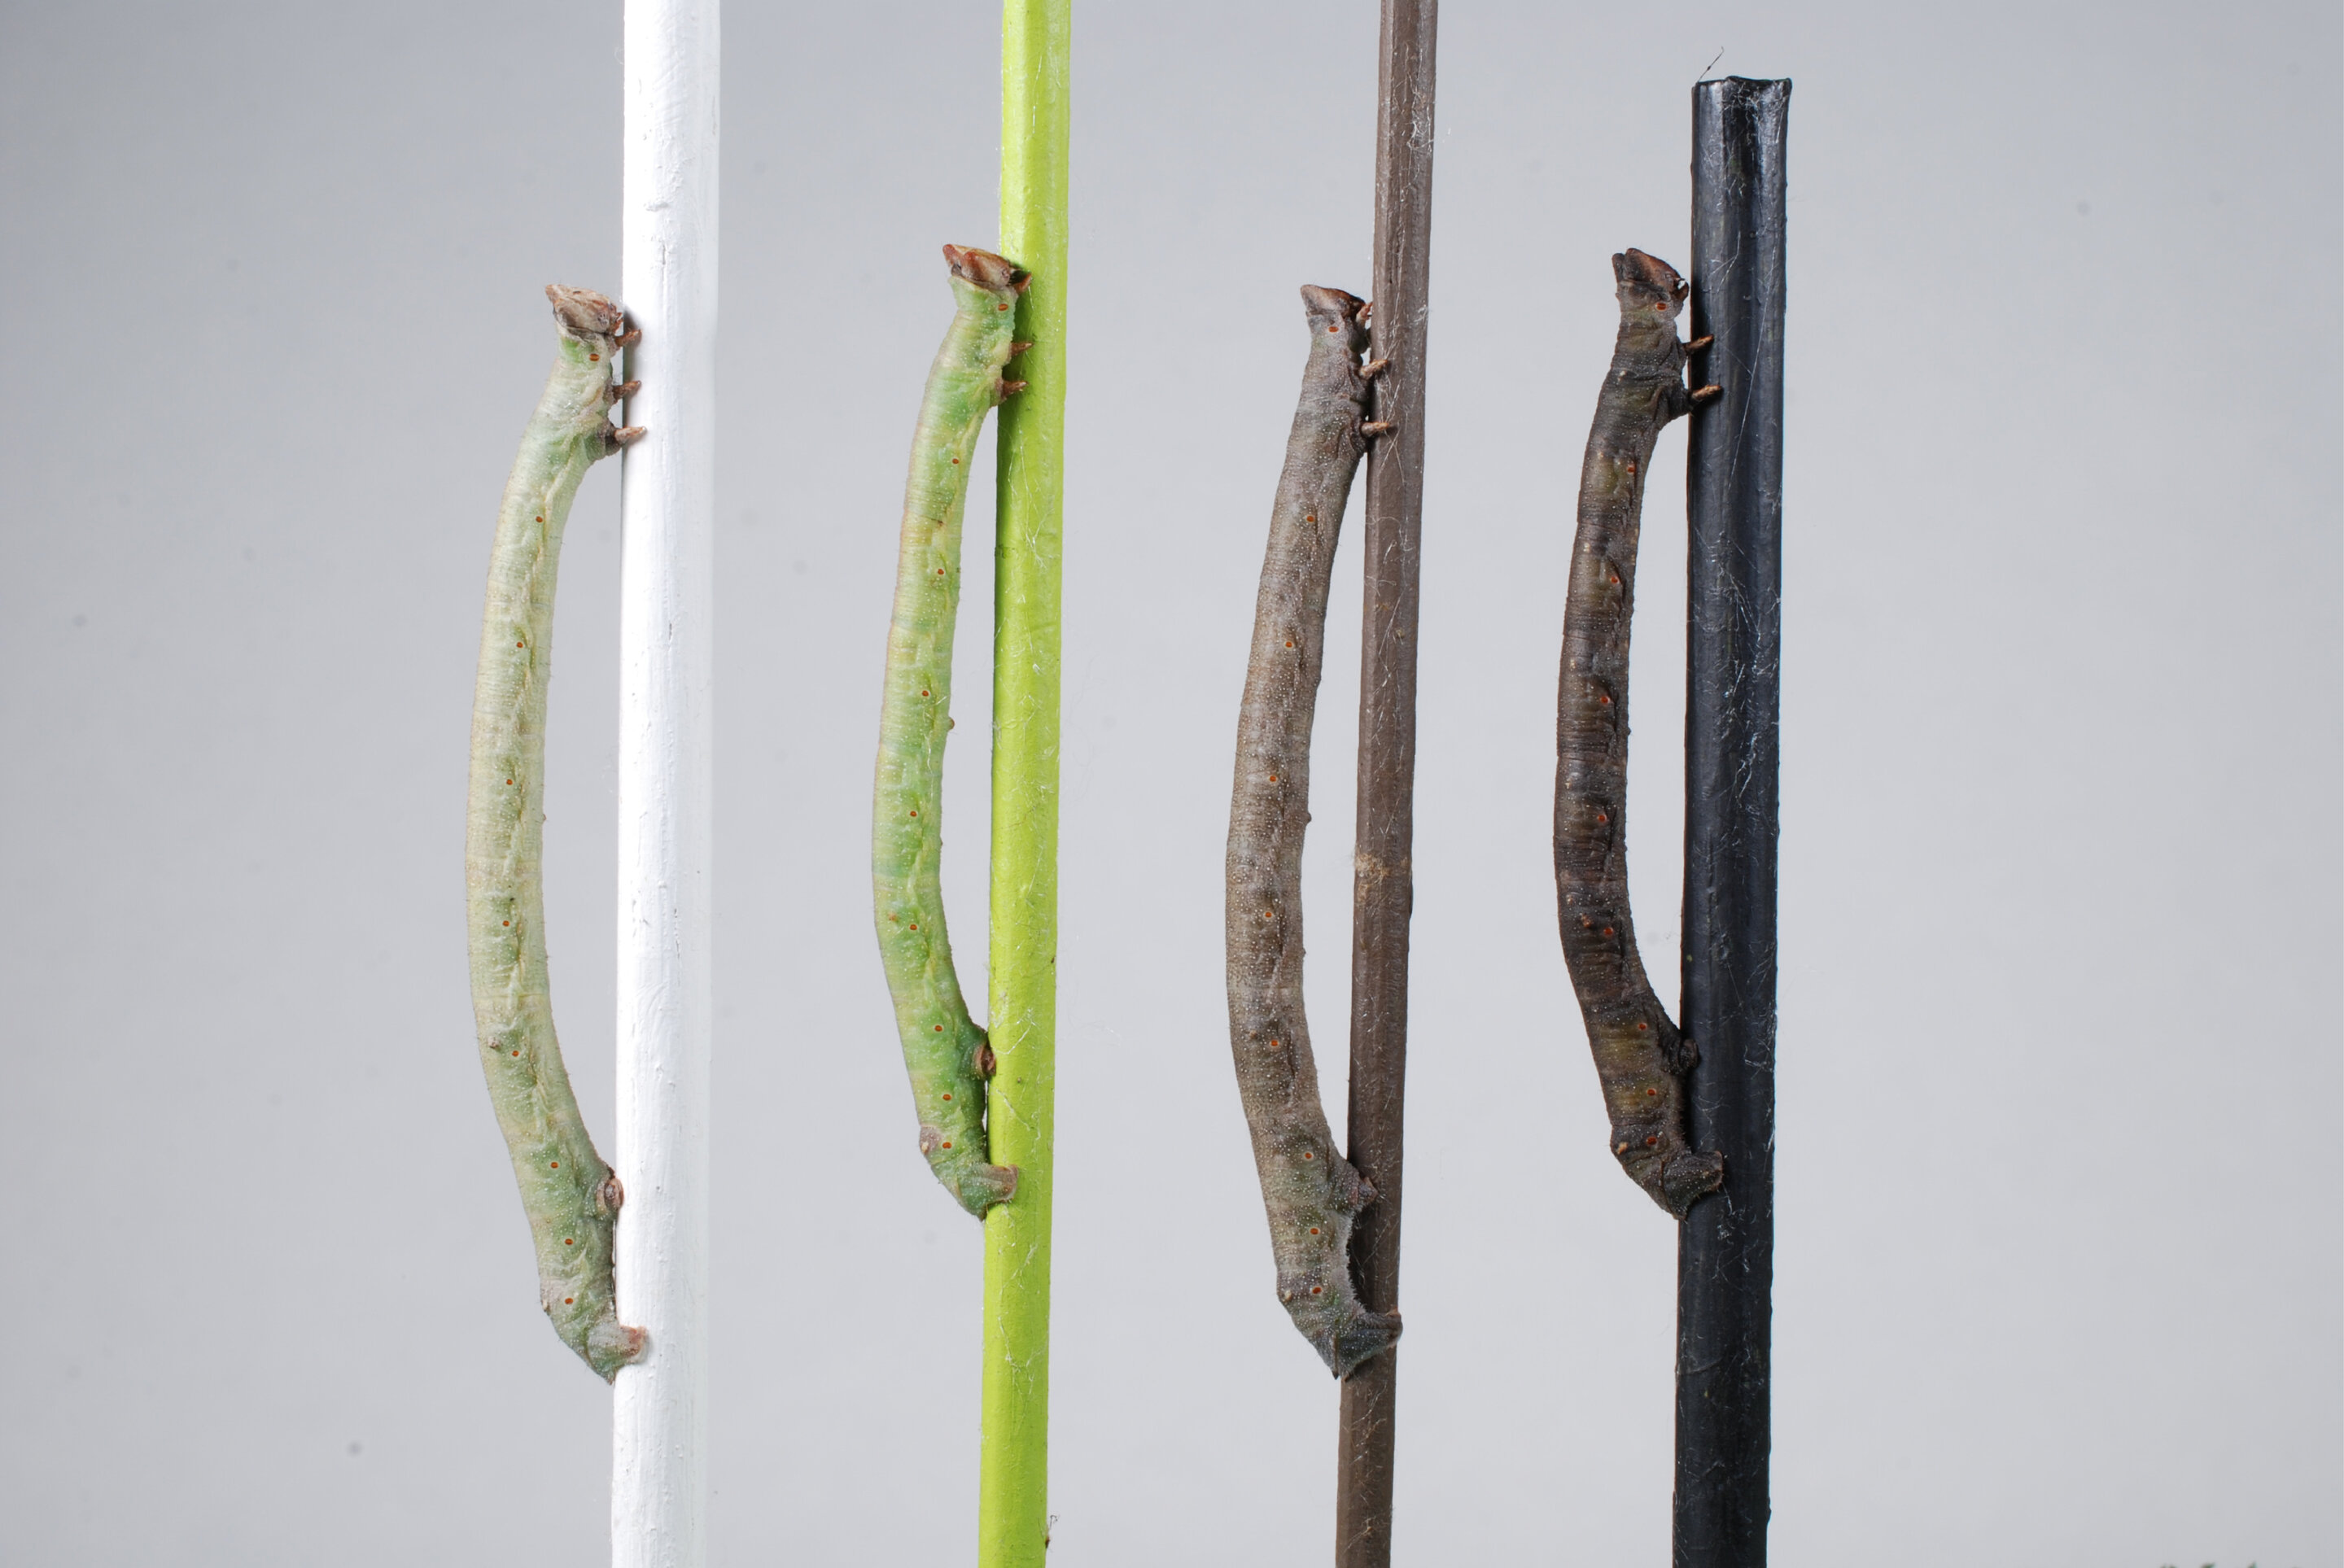 Caterpillars Of The Peppered Moth Perceive Color Through